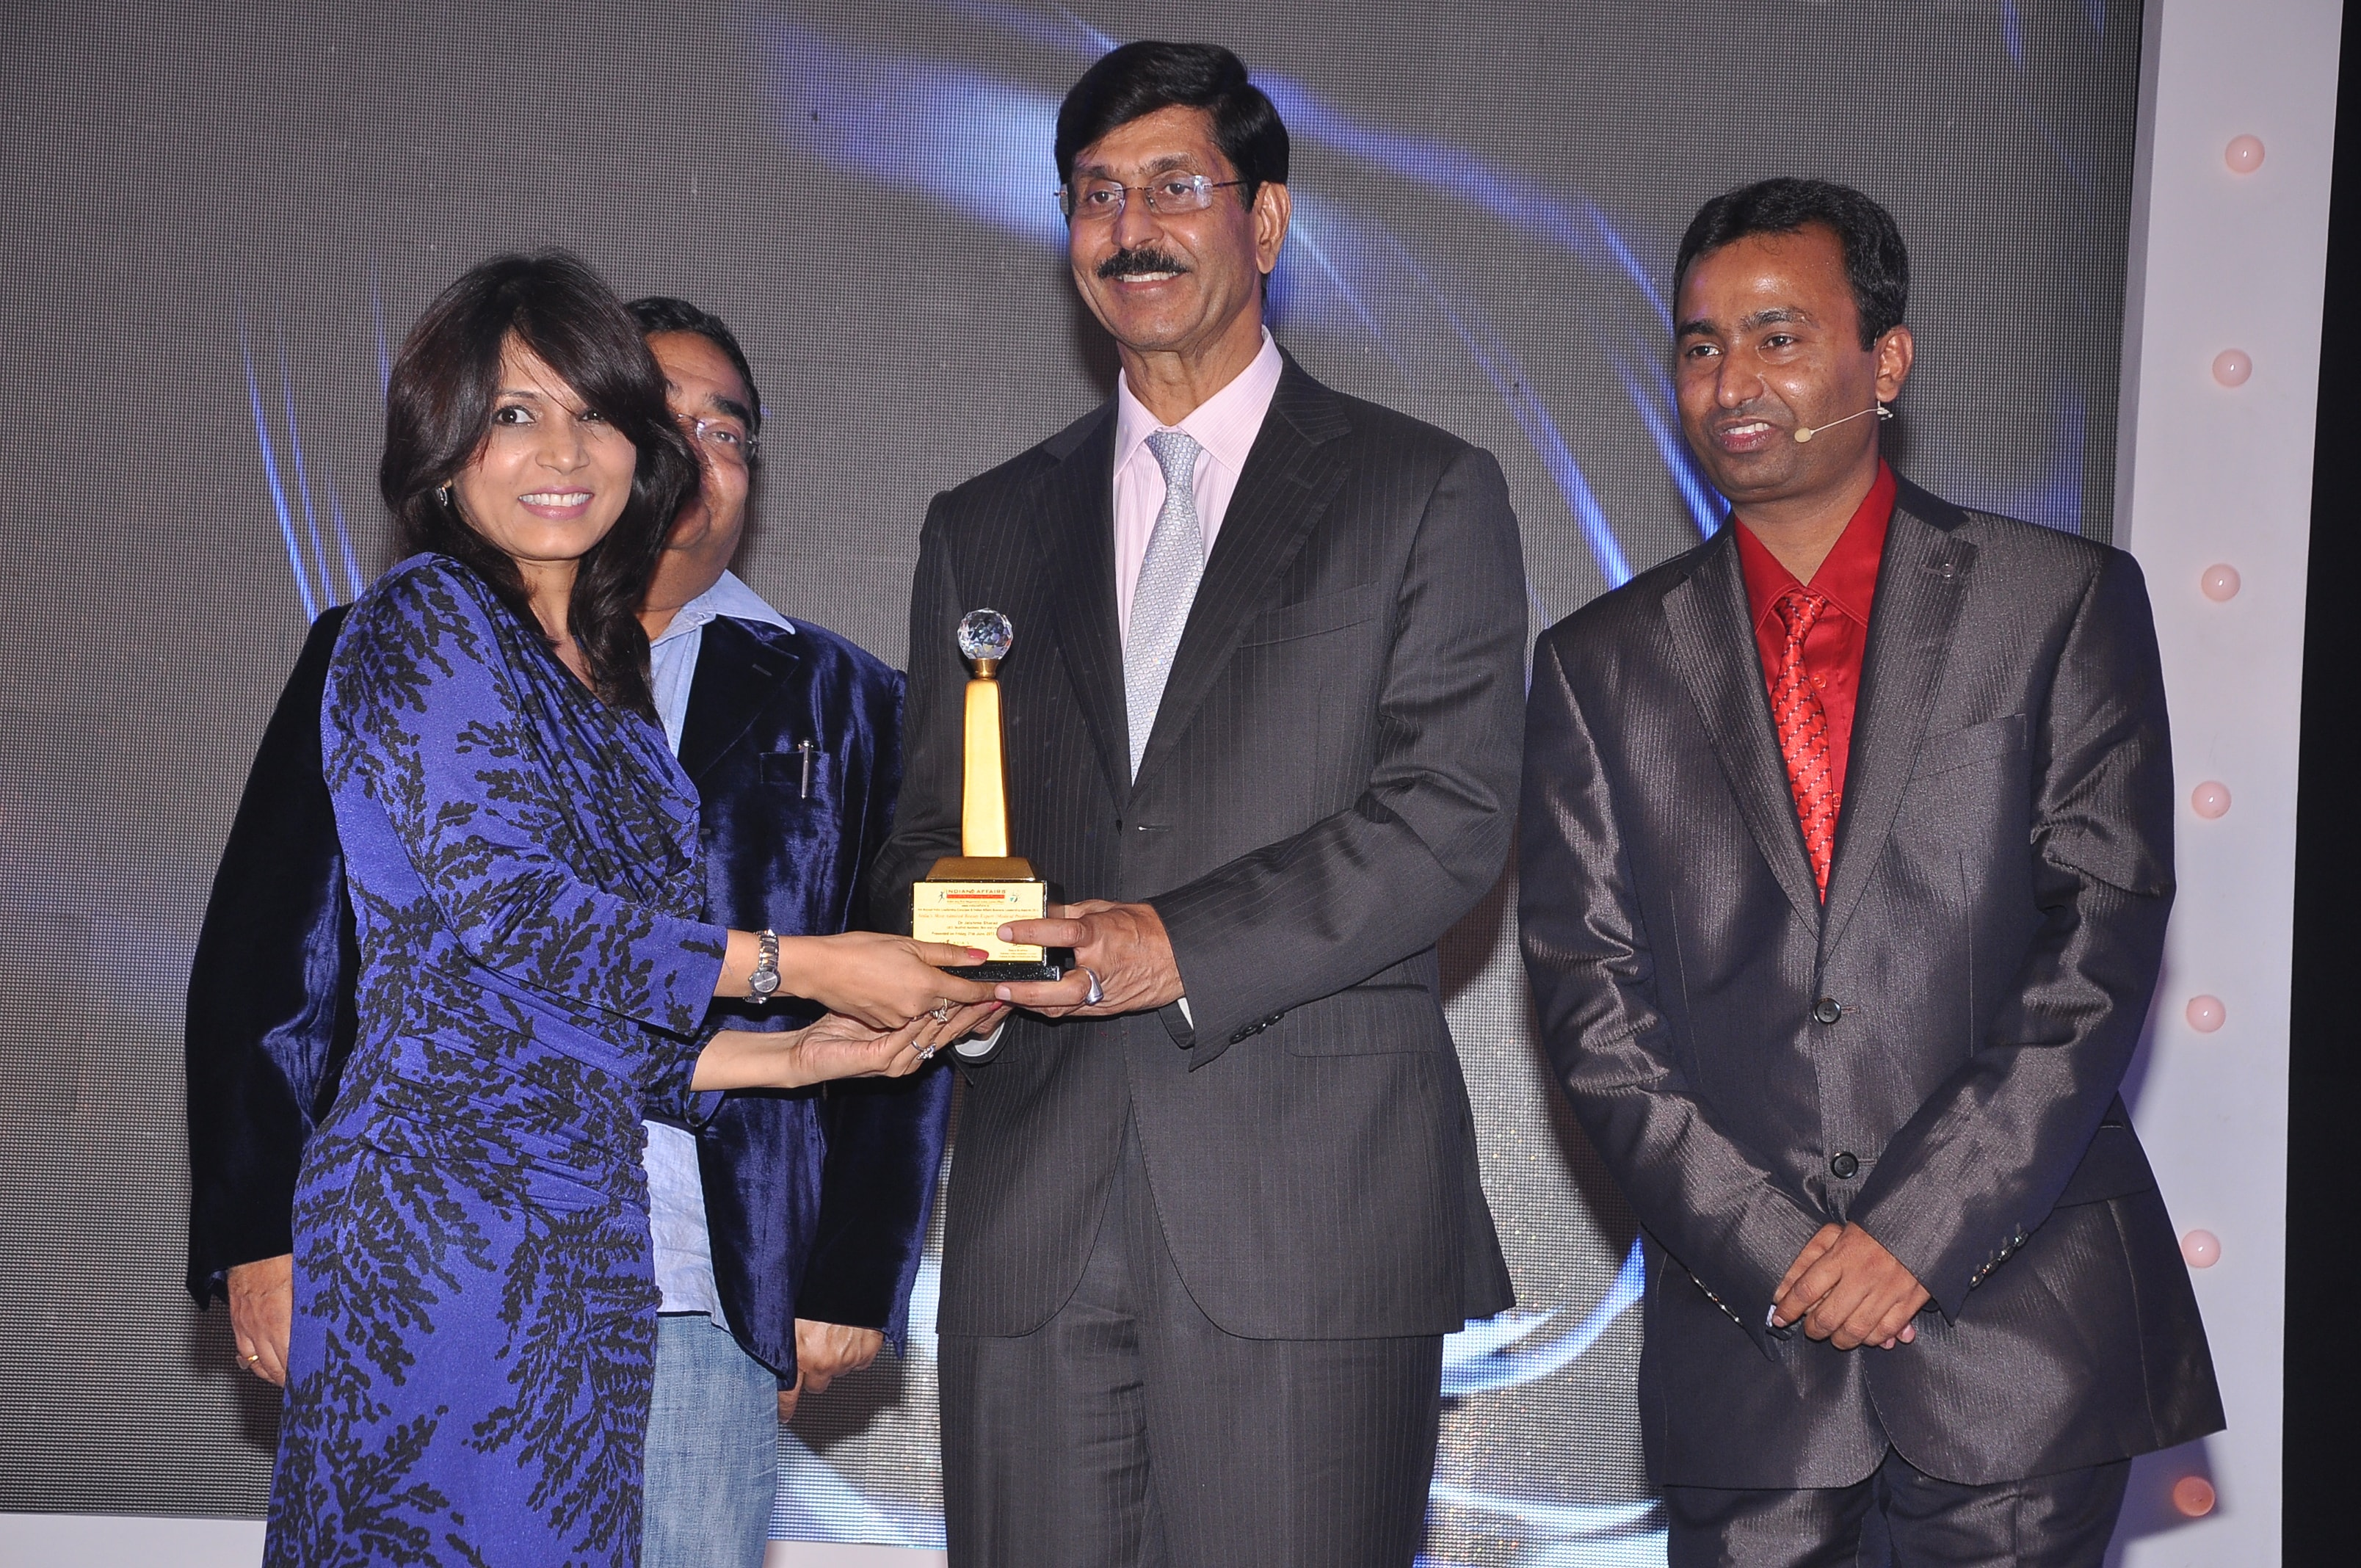 Dr. Jaishree receiving an award at The Pharma Leadership Awards as The Best Beauty Expert in the Country